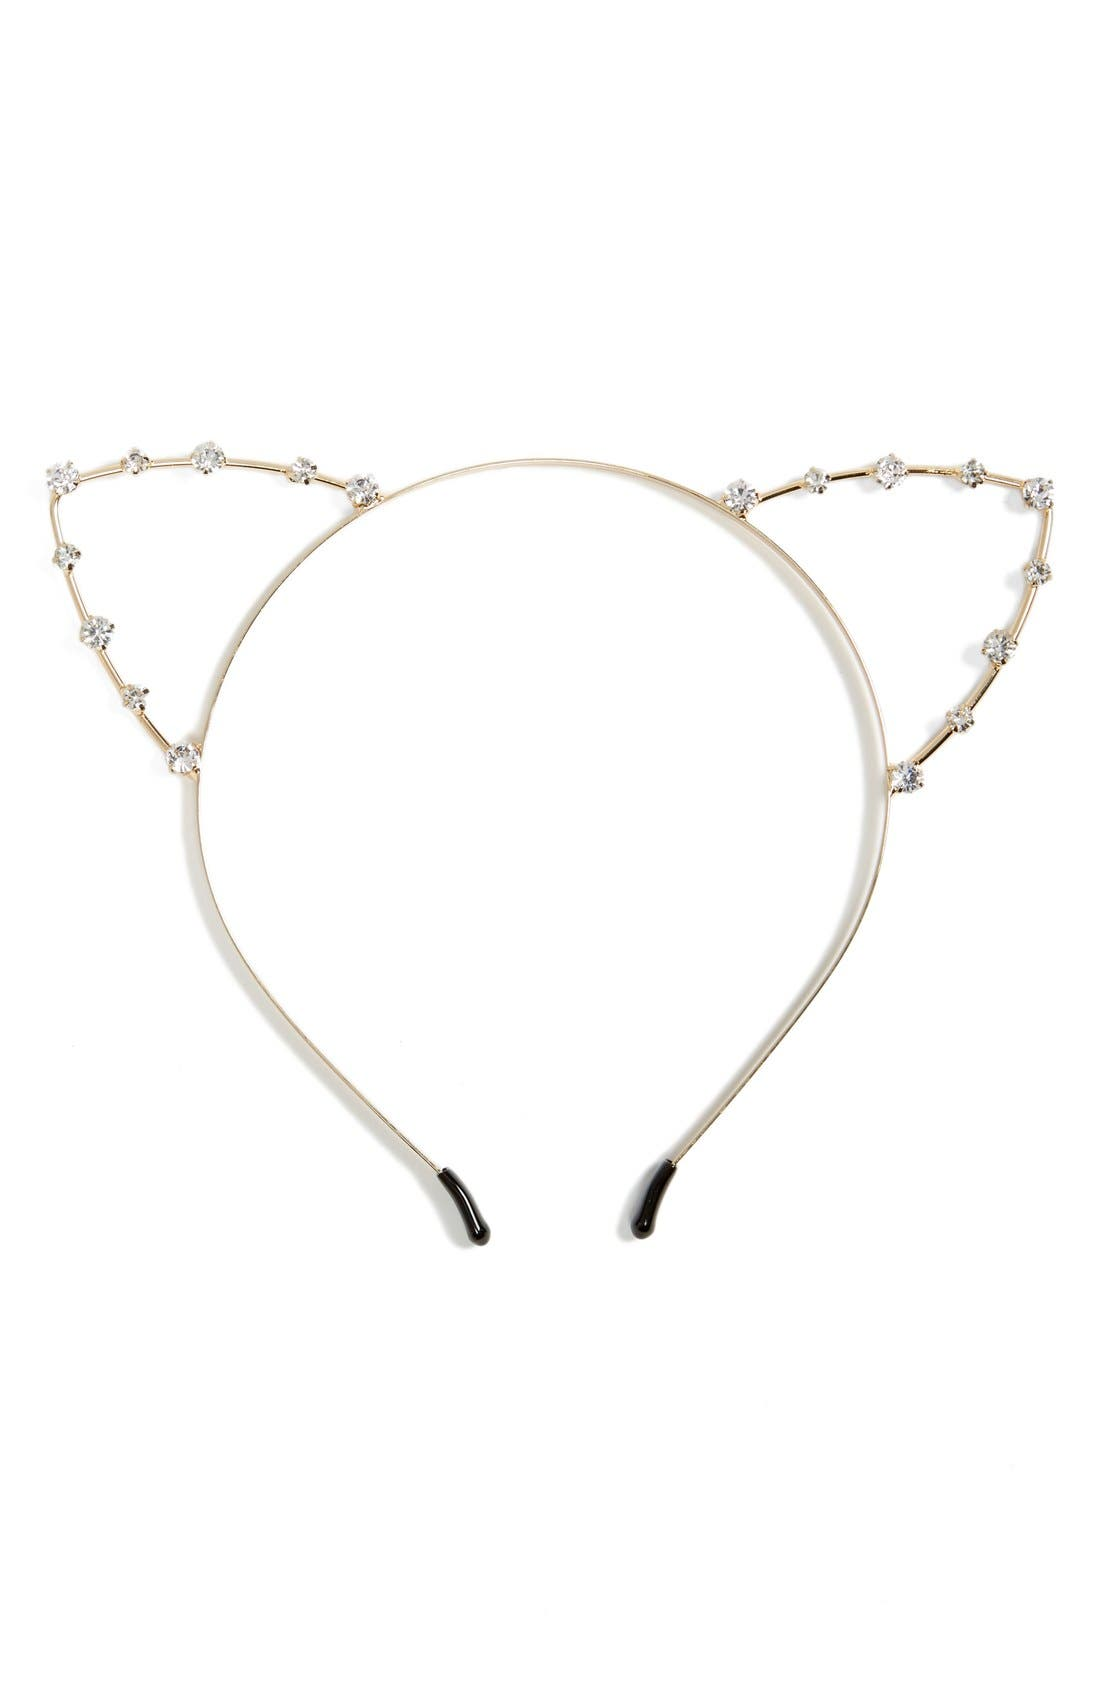 Main Image - Cara Crystal Cat Ears Headband